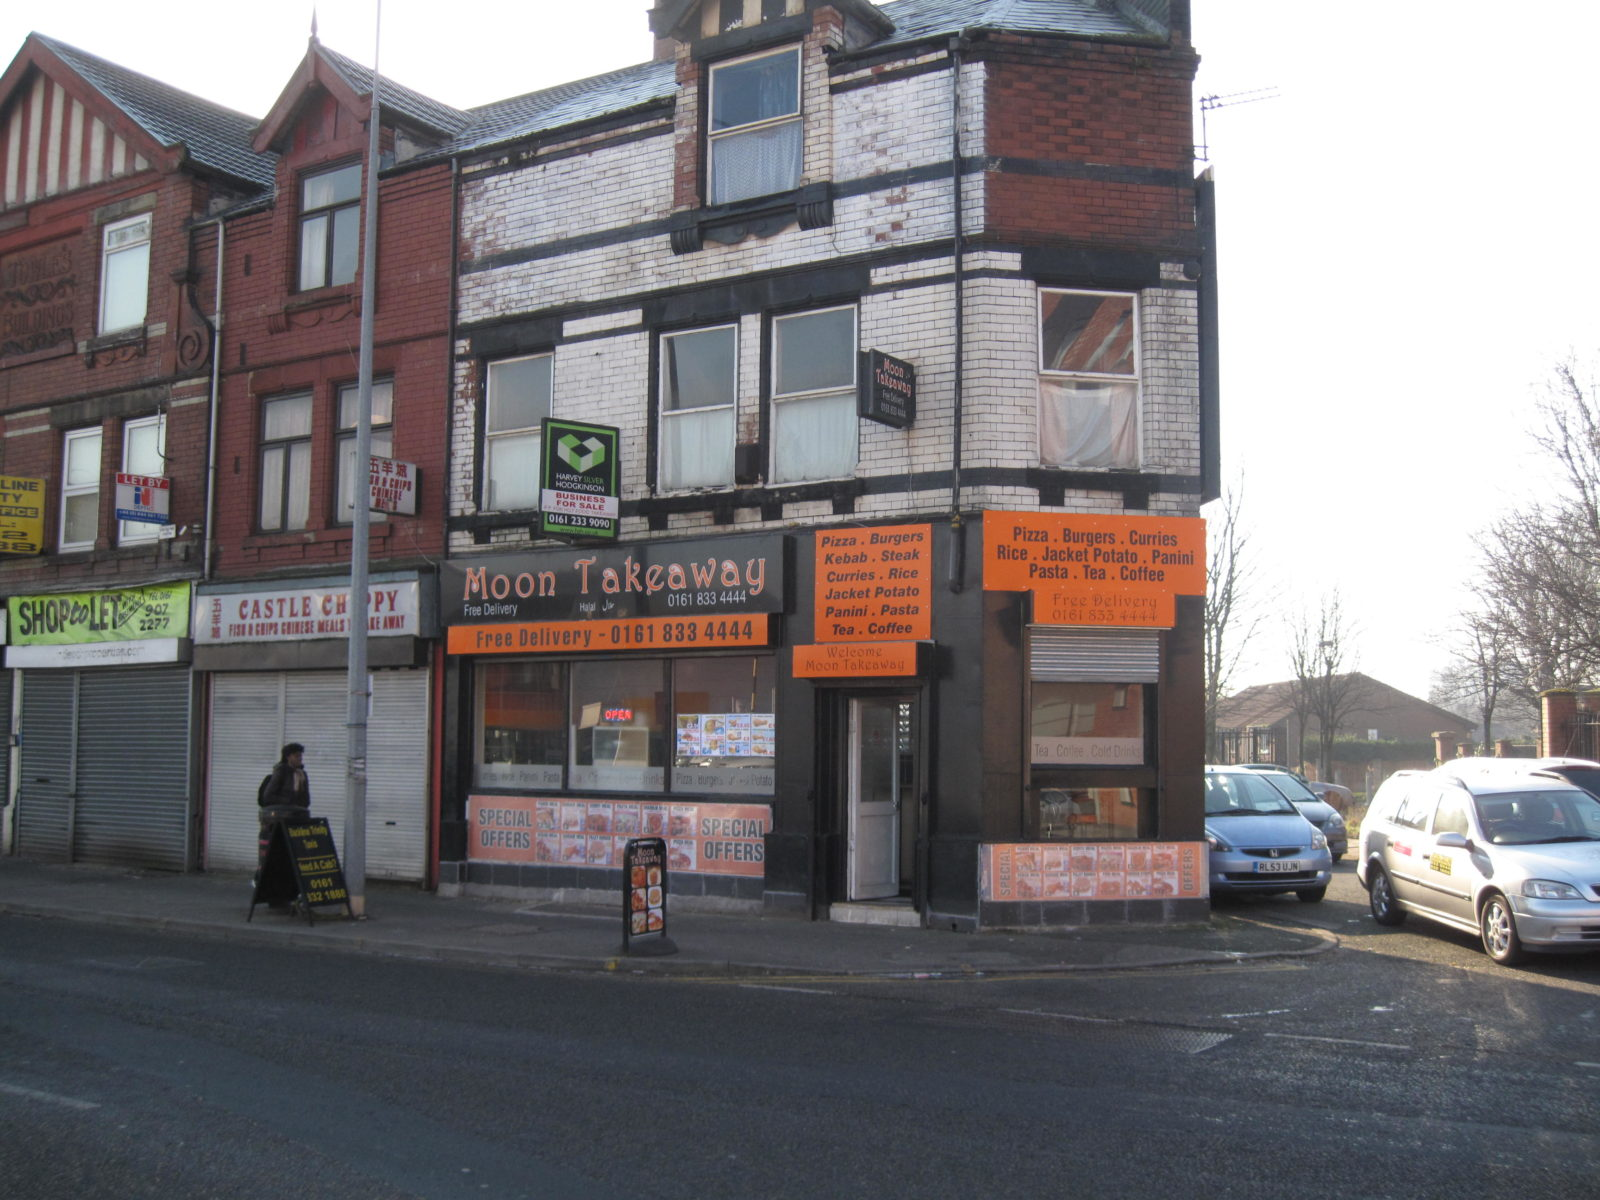 Chinese Restaurants in Manchester